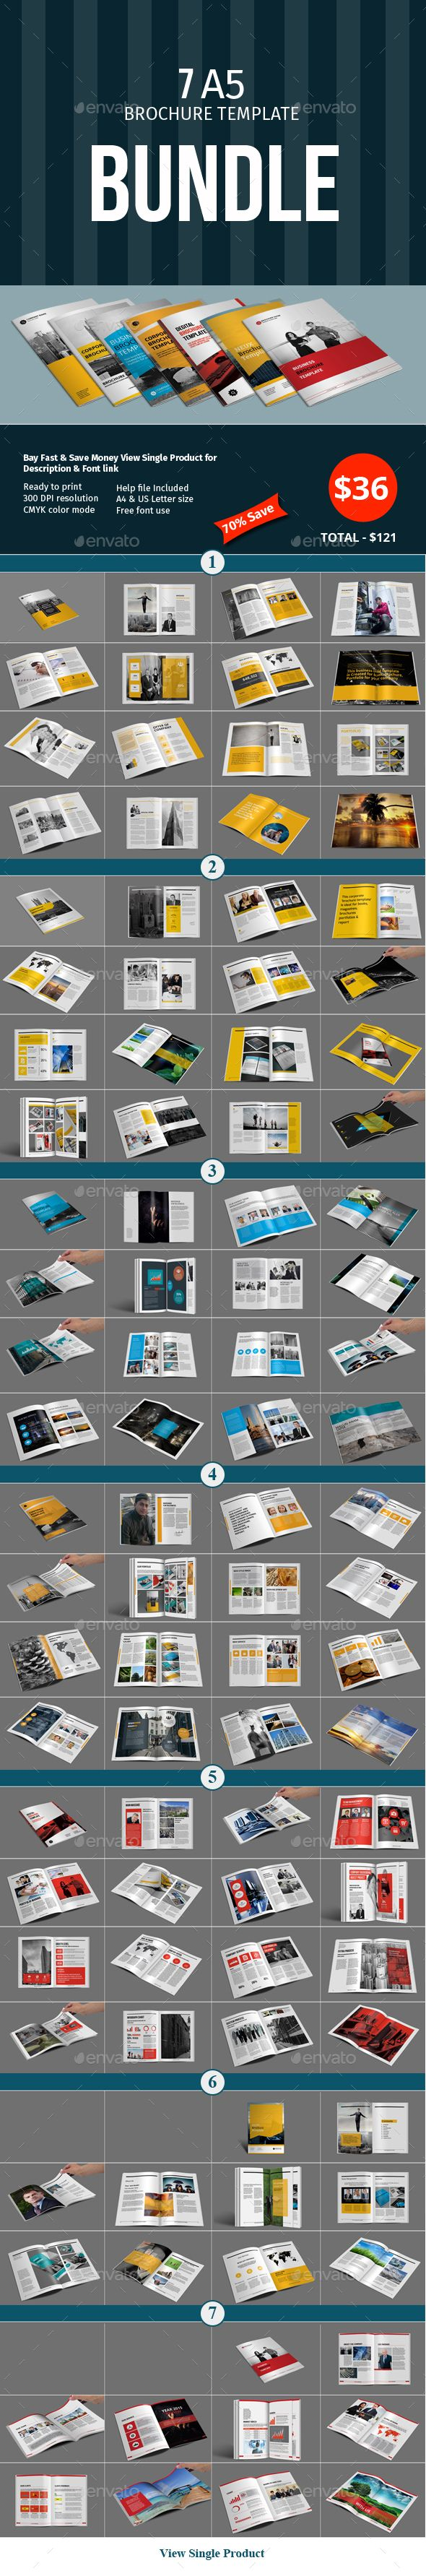 A5 Brochure Template Bundle — InDesign INDD #company #148x210 • Download ➝ https://graphicriver.net/item/a5-brochure-template-bundle/18842899?ref=pxcr